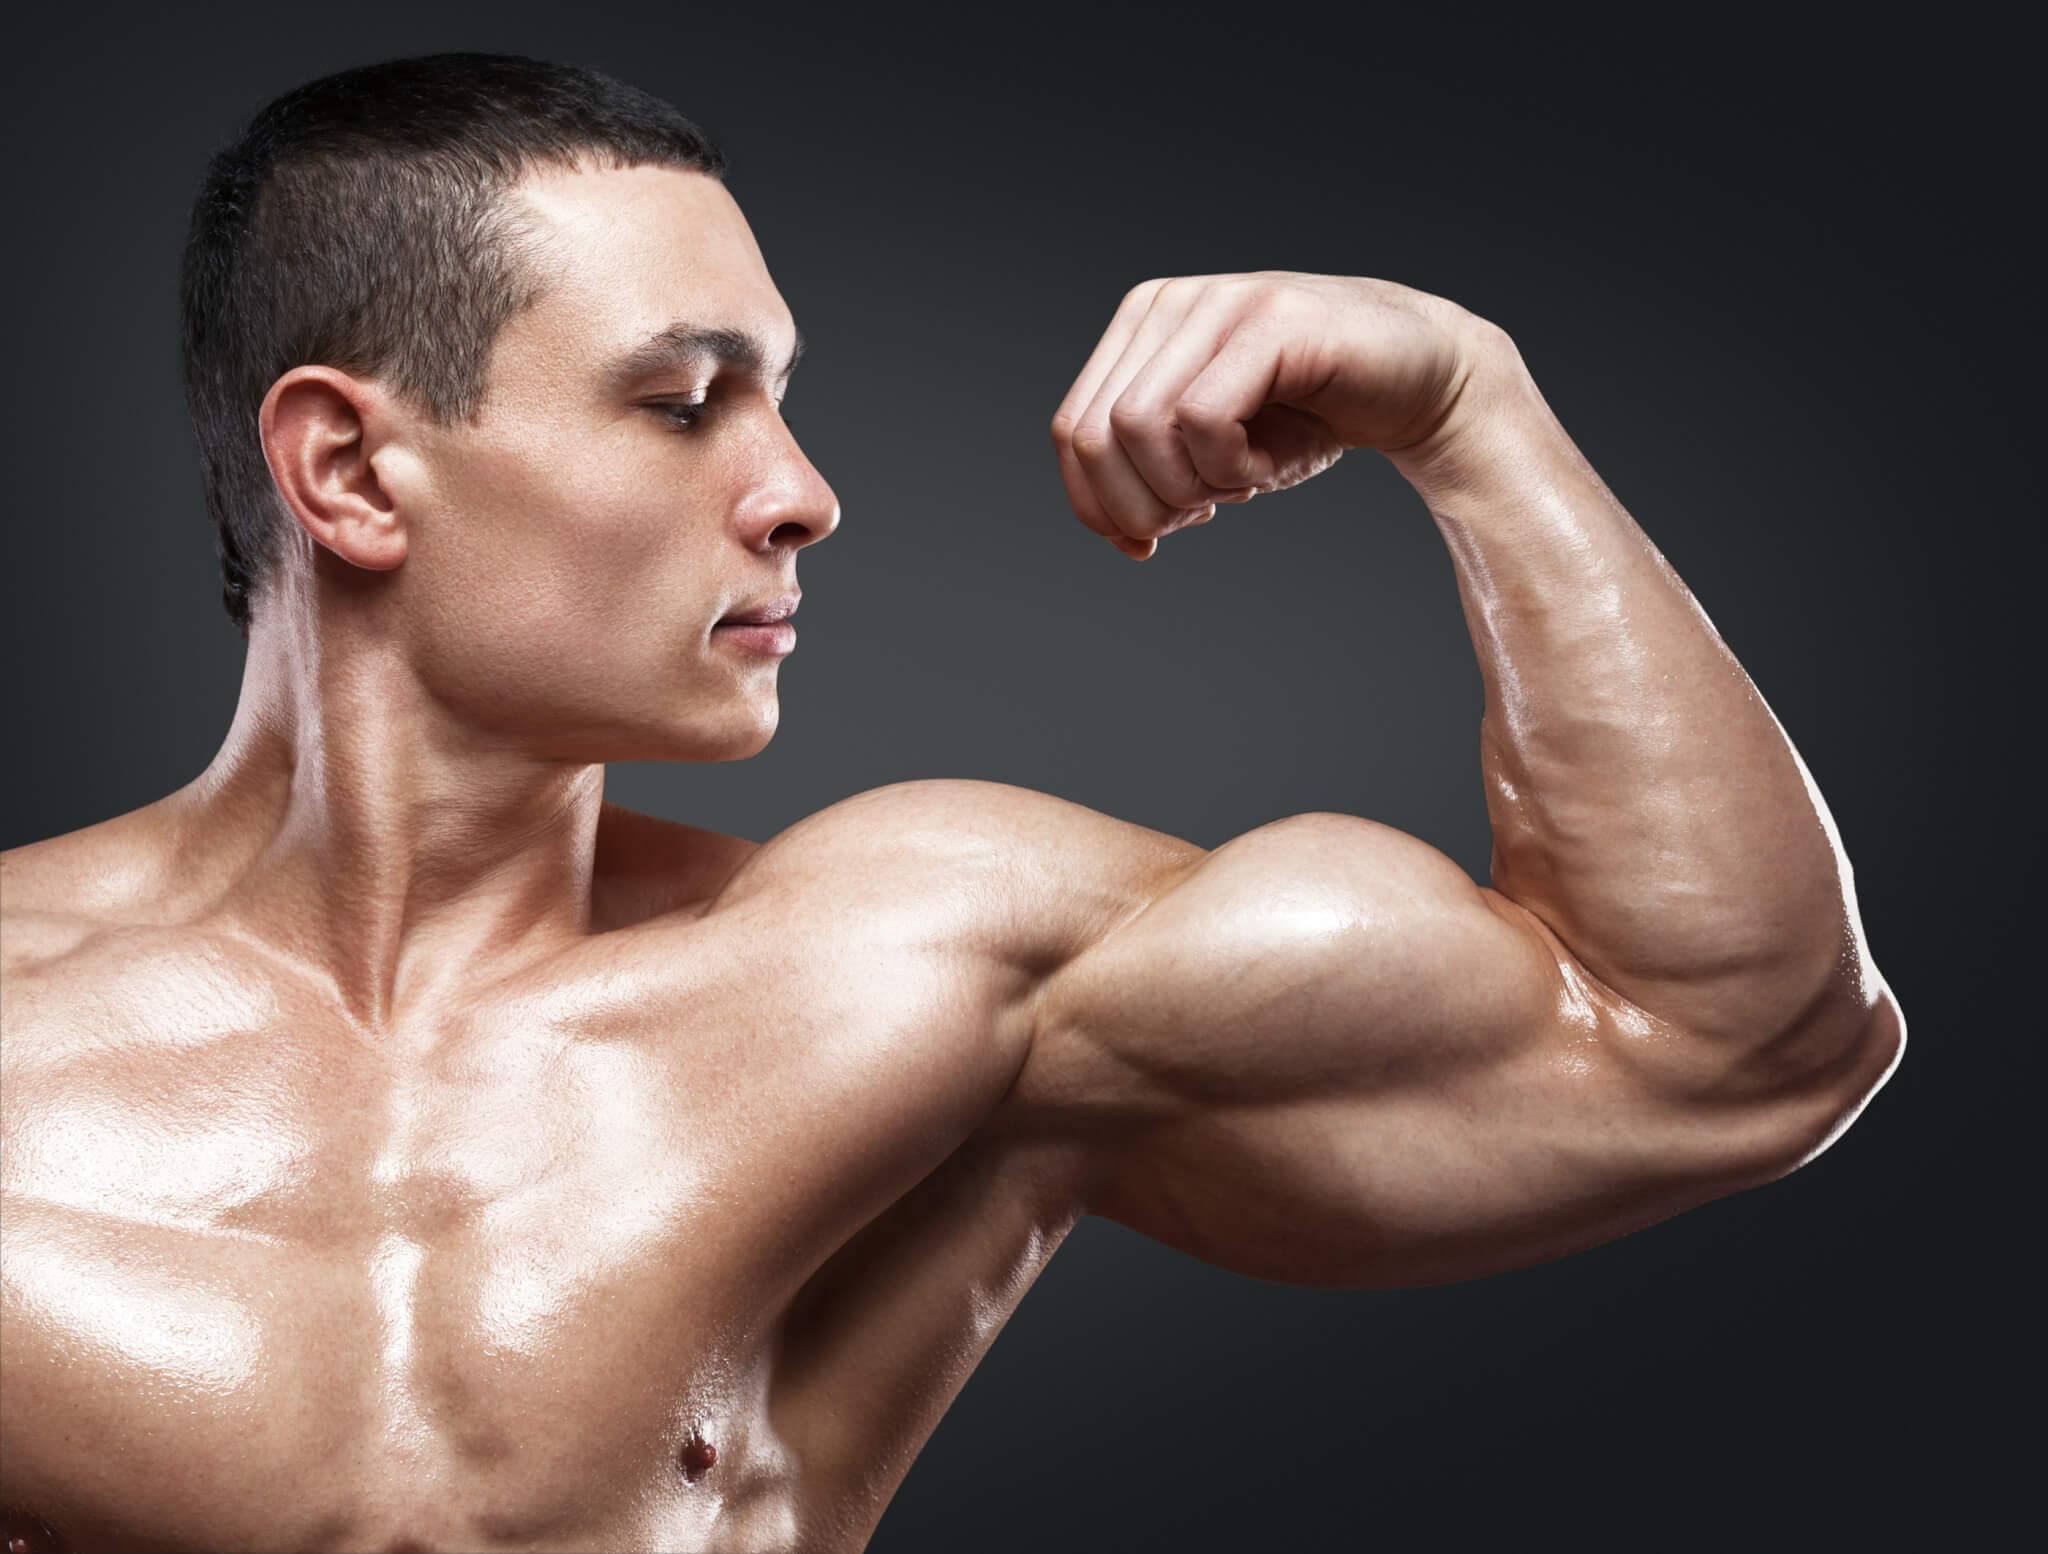 How To Make Your Muscles Grow Faster Naturally